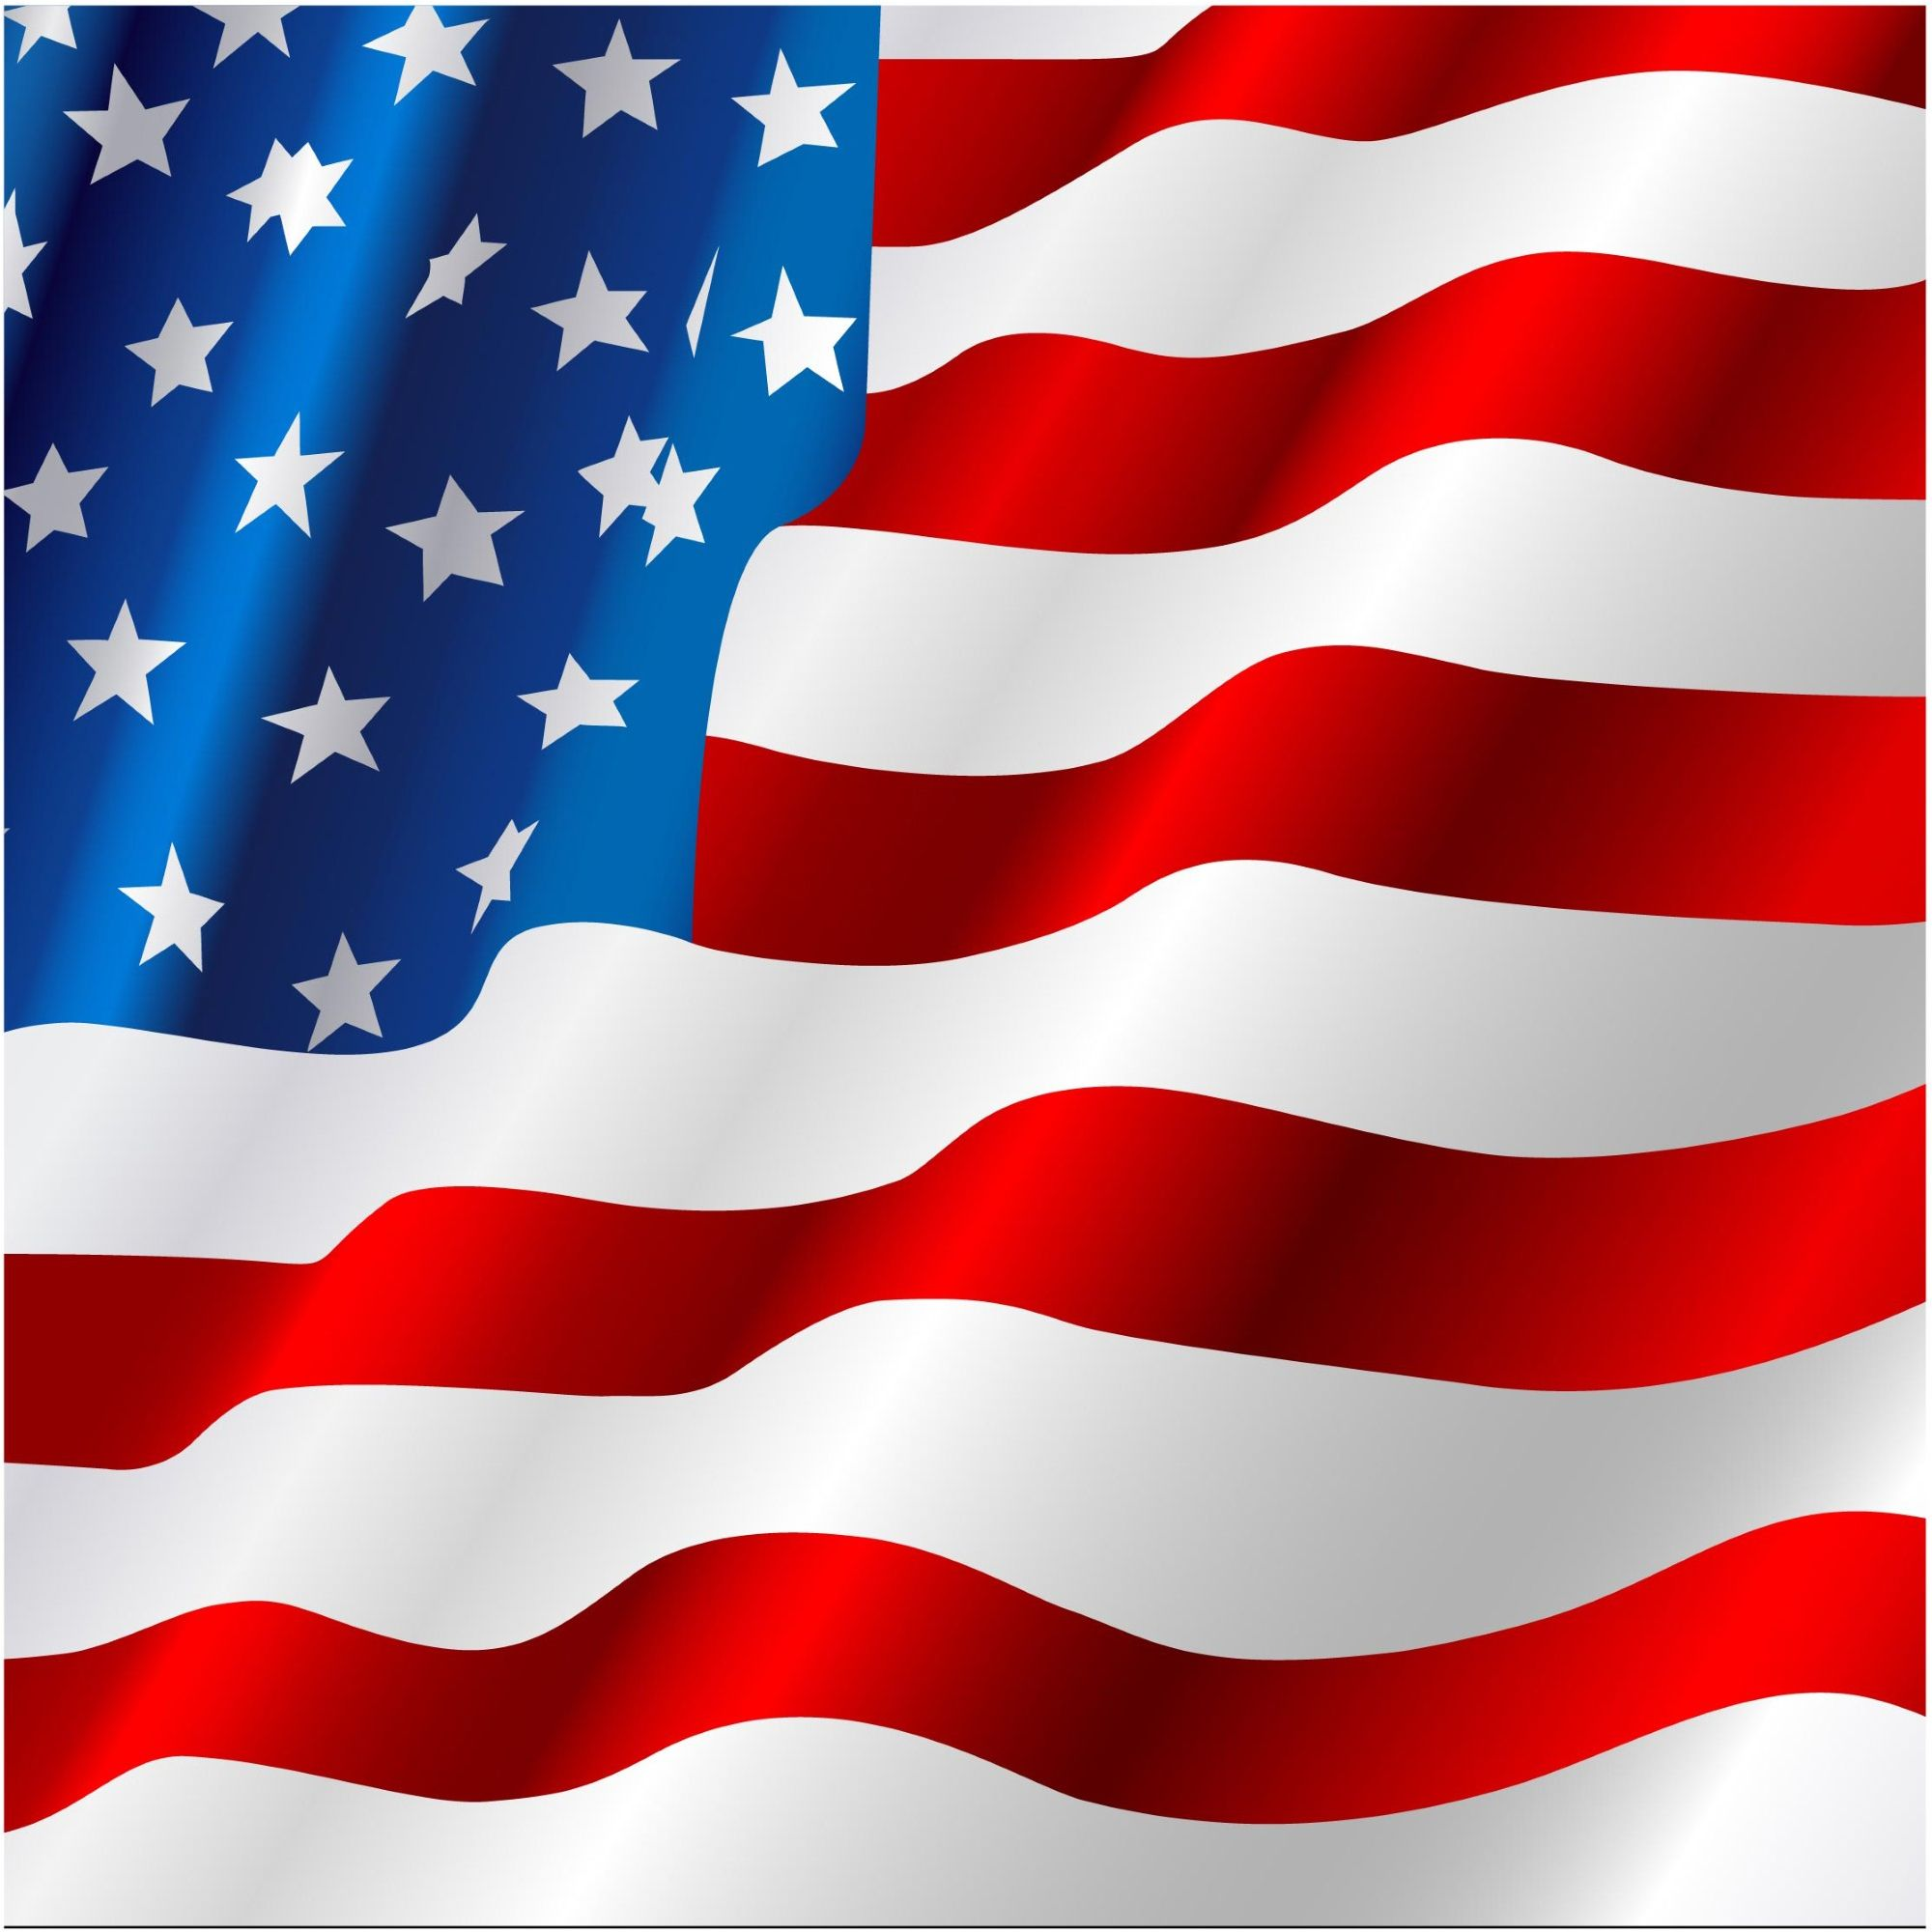 2000x2000 Usa Flag Vector Background Usa Independence Day Backgrounds